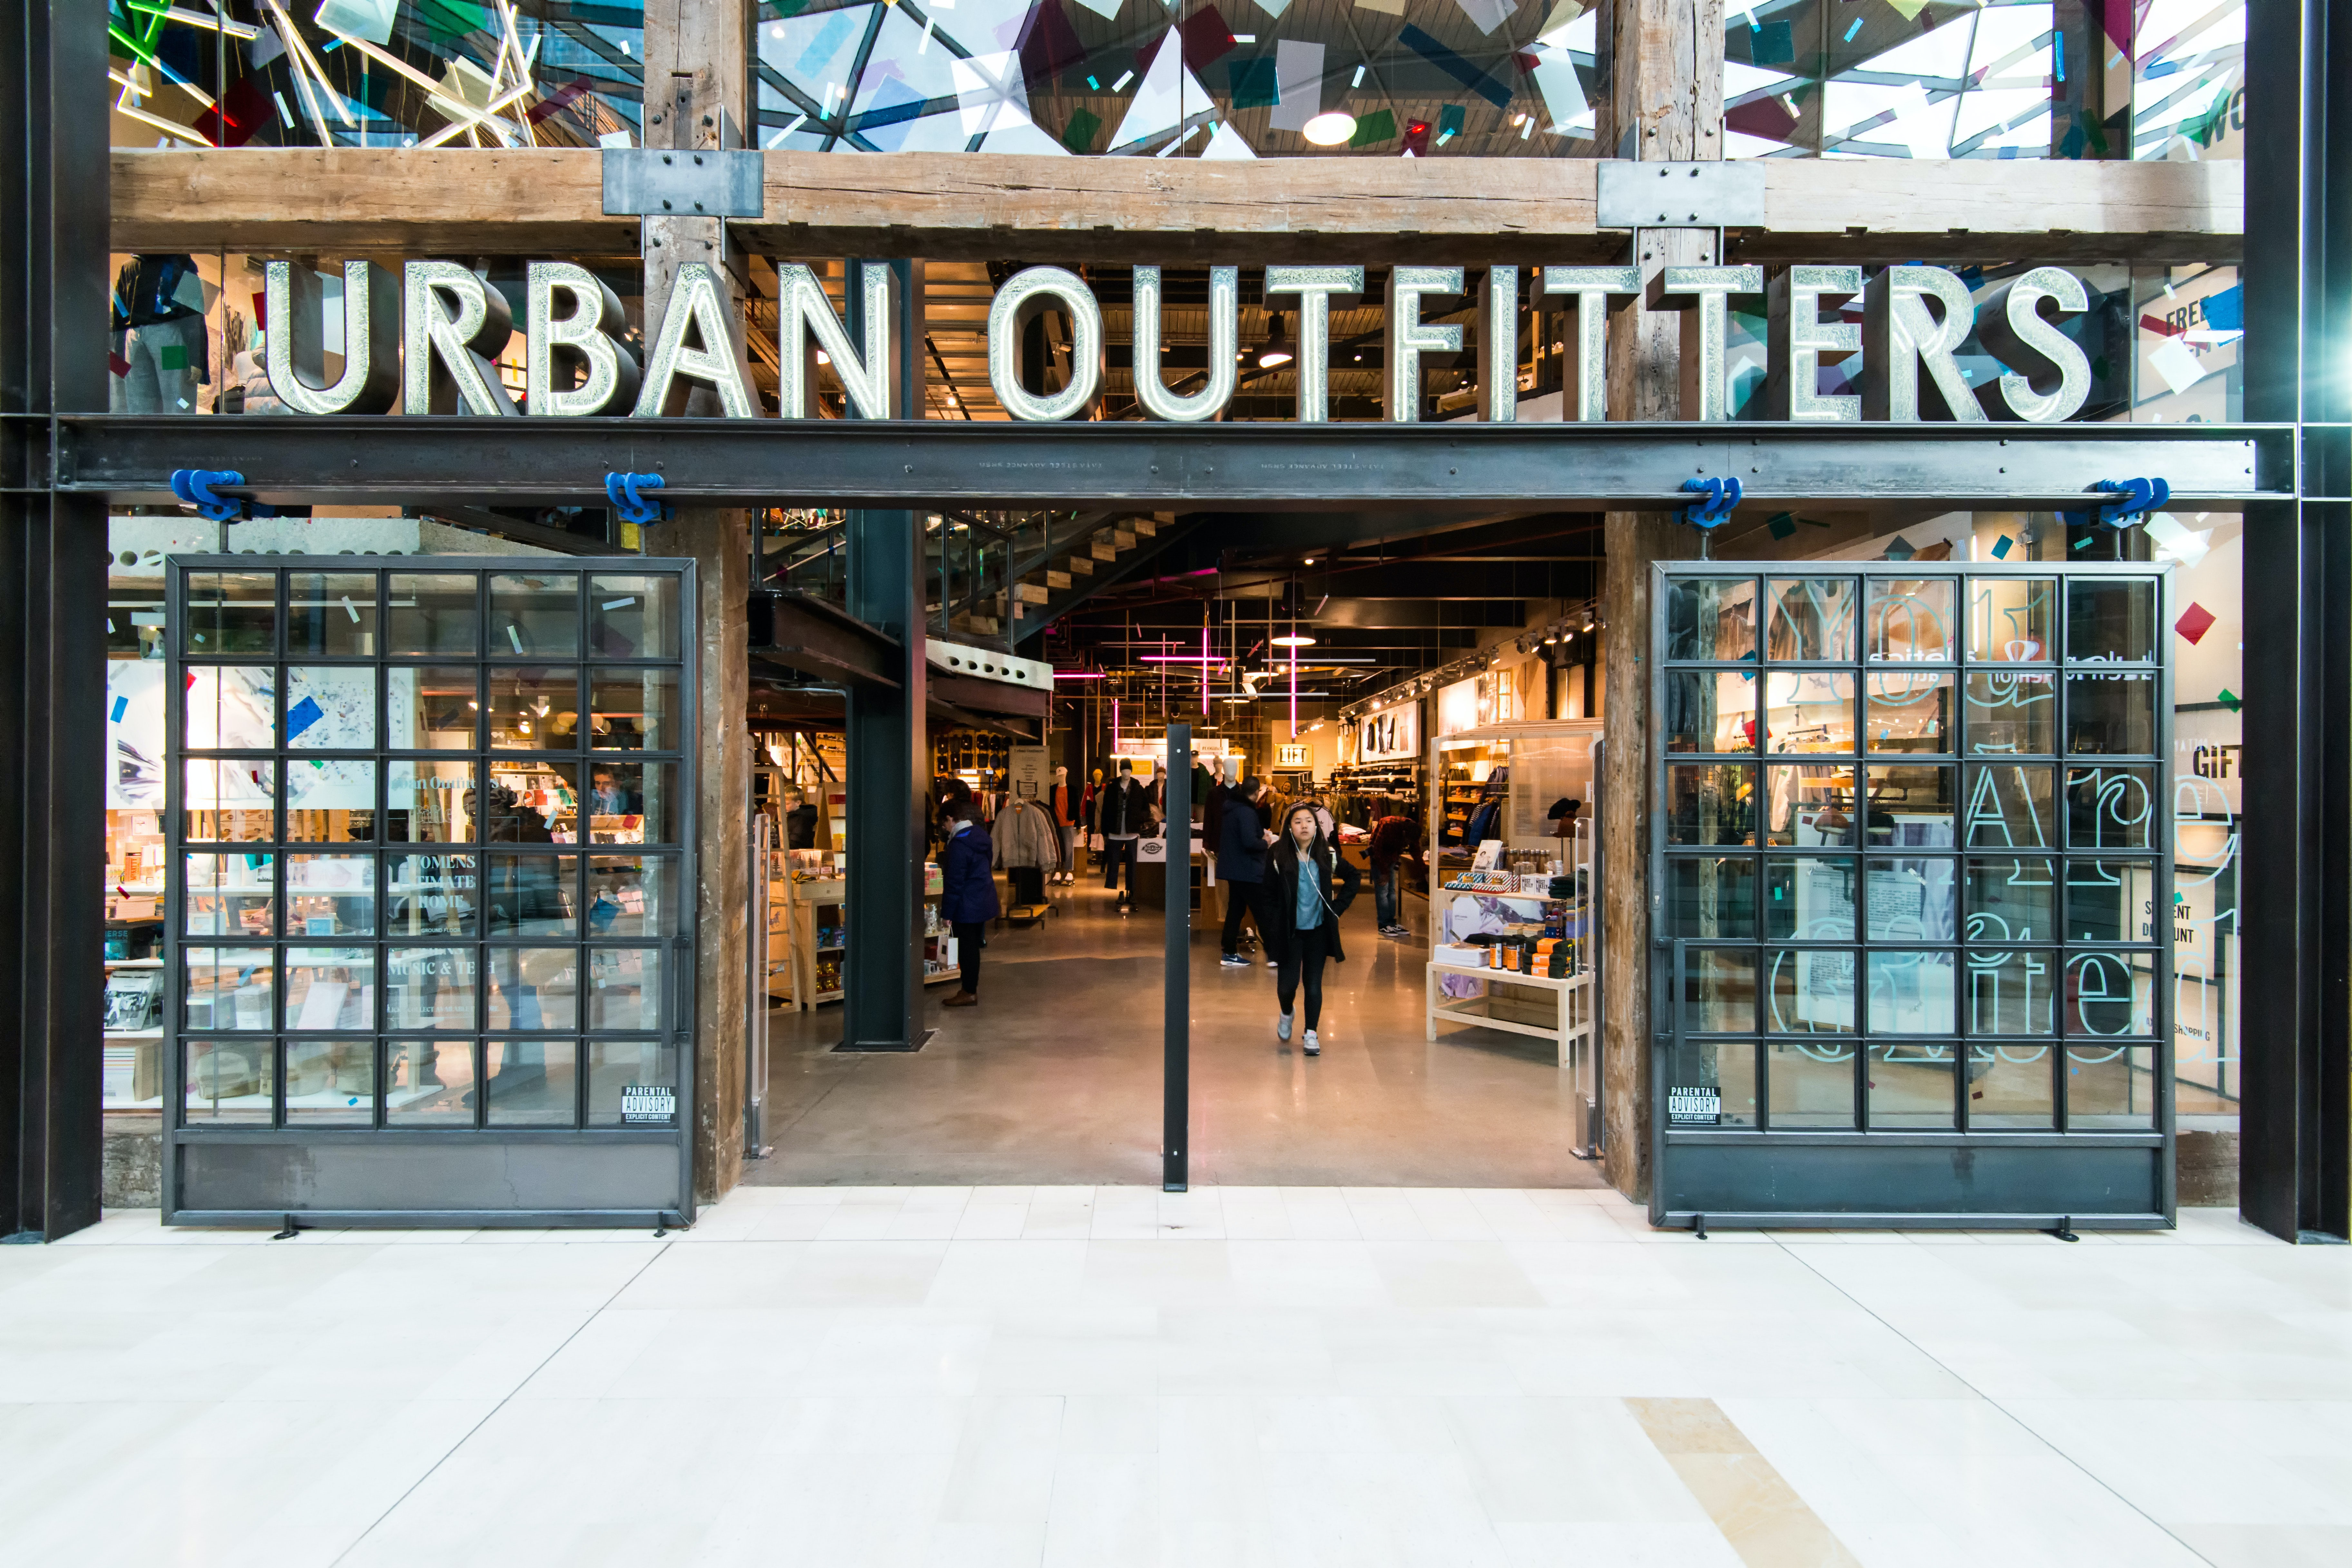 Urban Outfitters First-Quarter Sales Beat Estimates